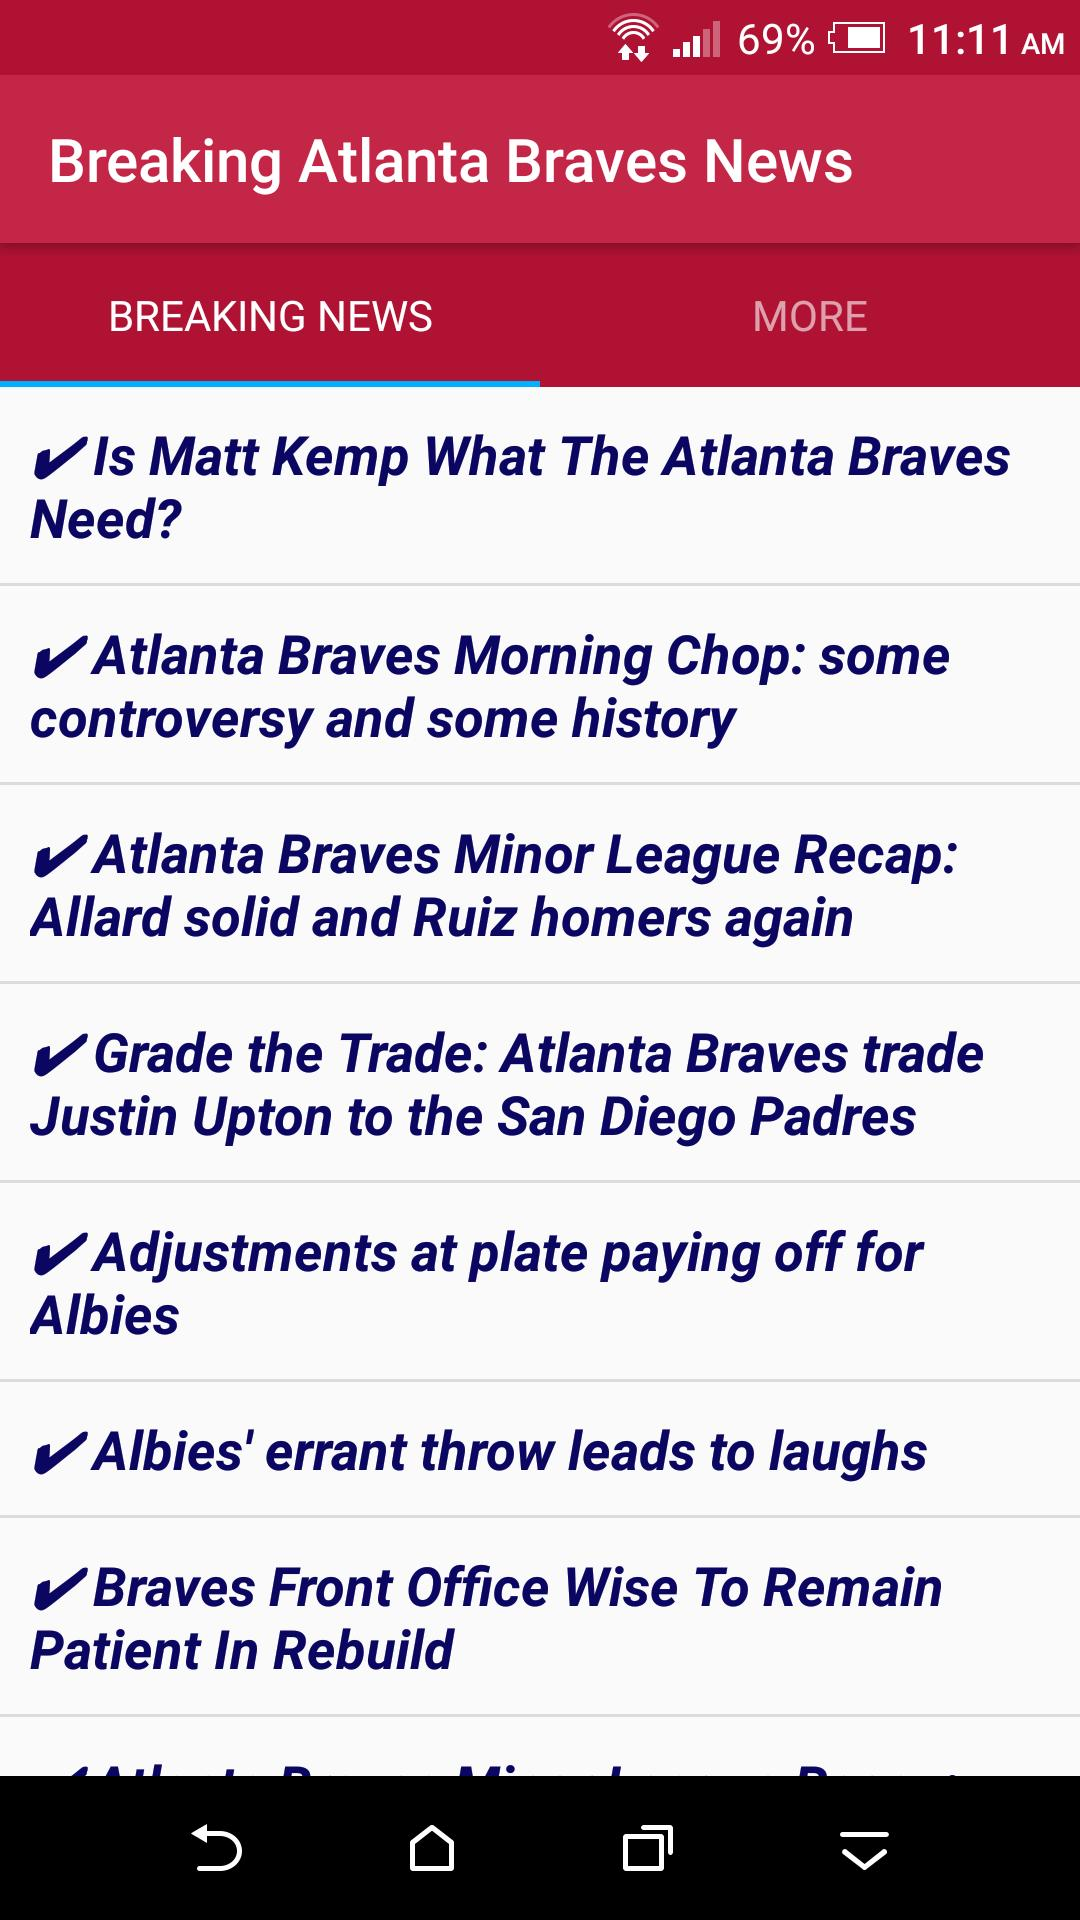 Breaking Atlanta Braves News for Android - APK Download